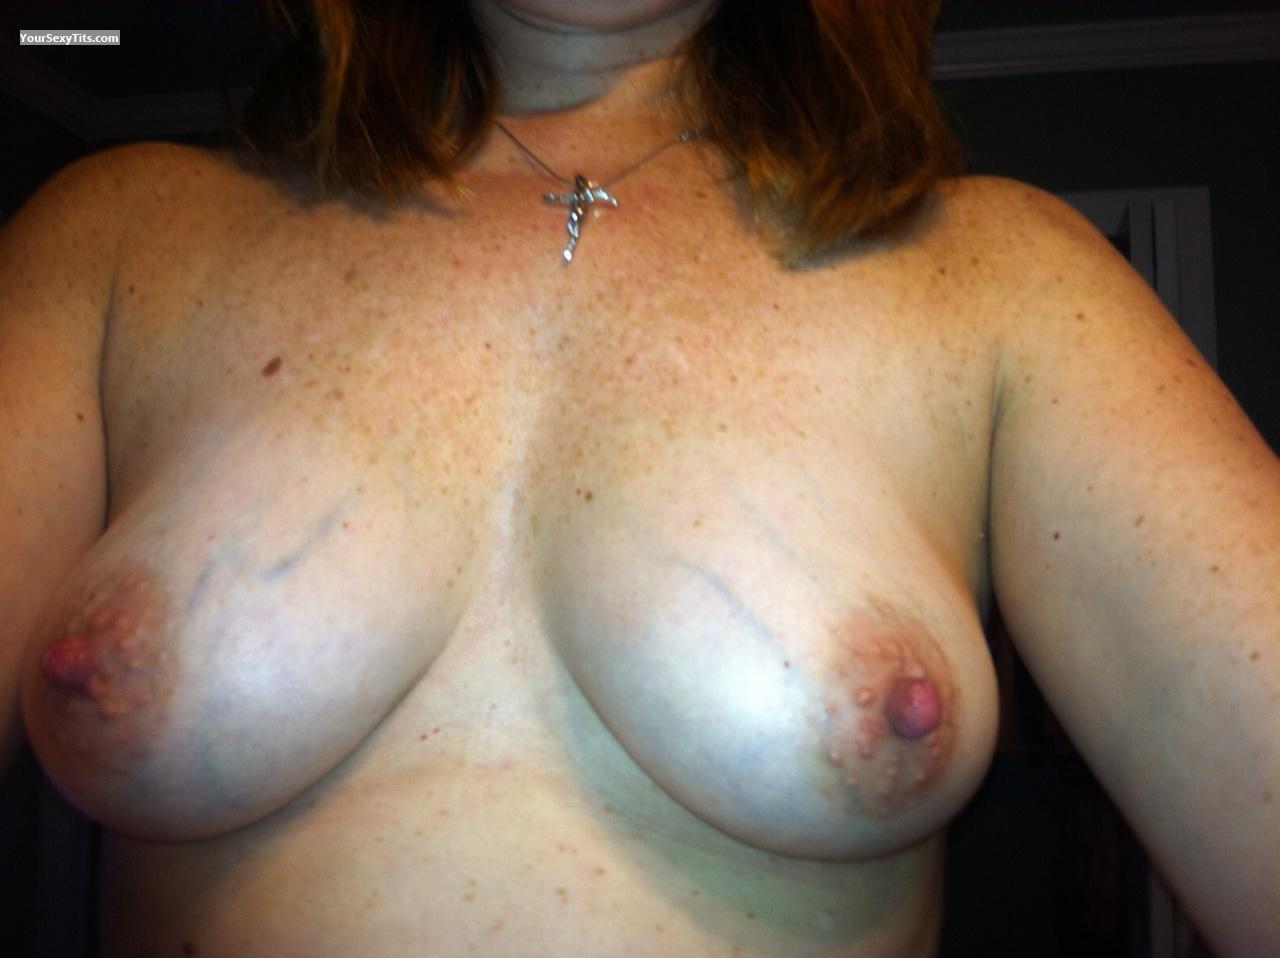 Tit Flash: My Medium Tits By IPhone (Selfie) - Jo from United States